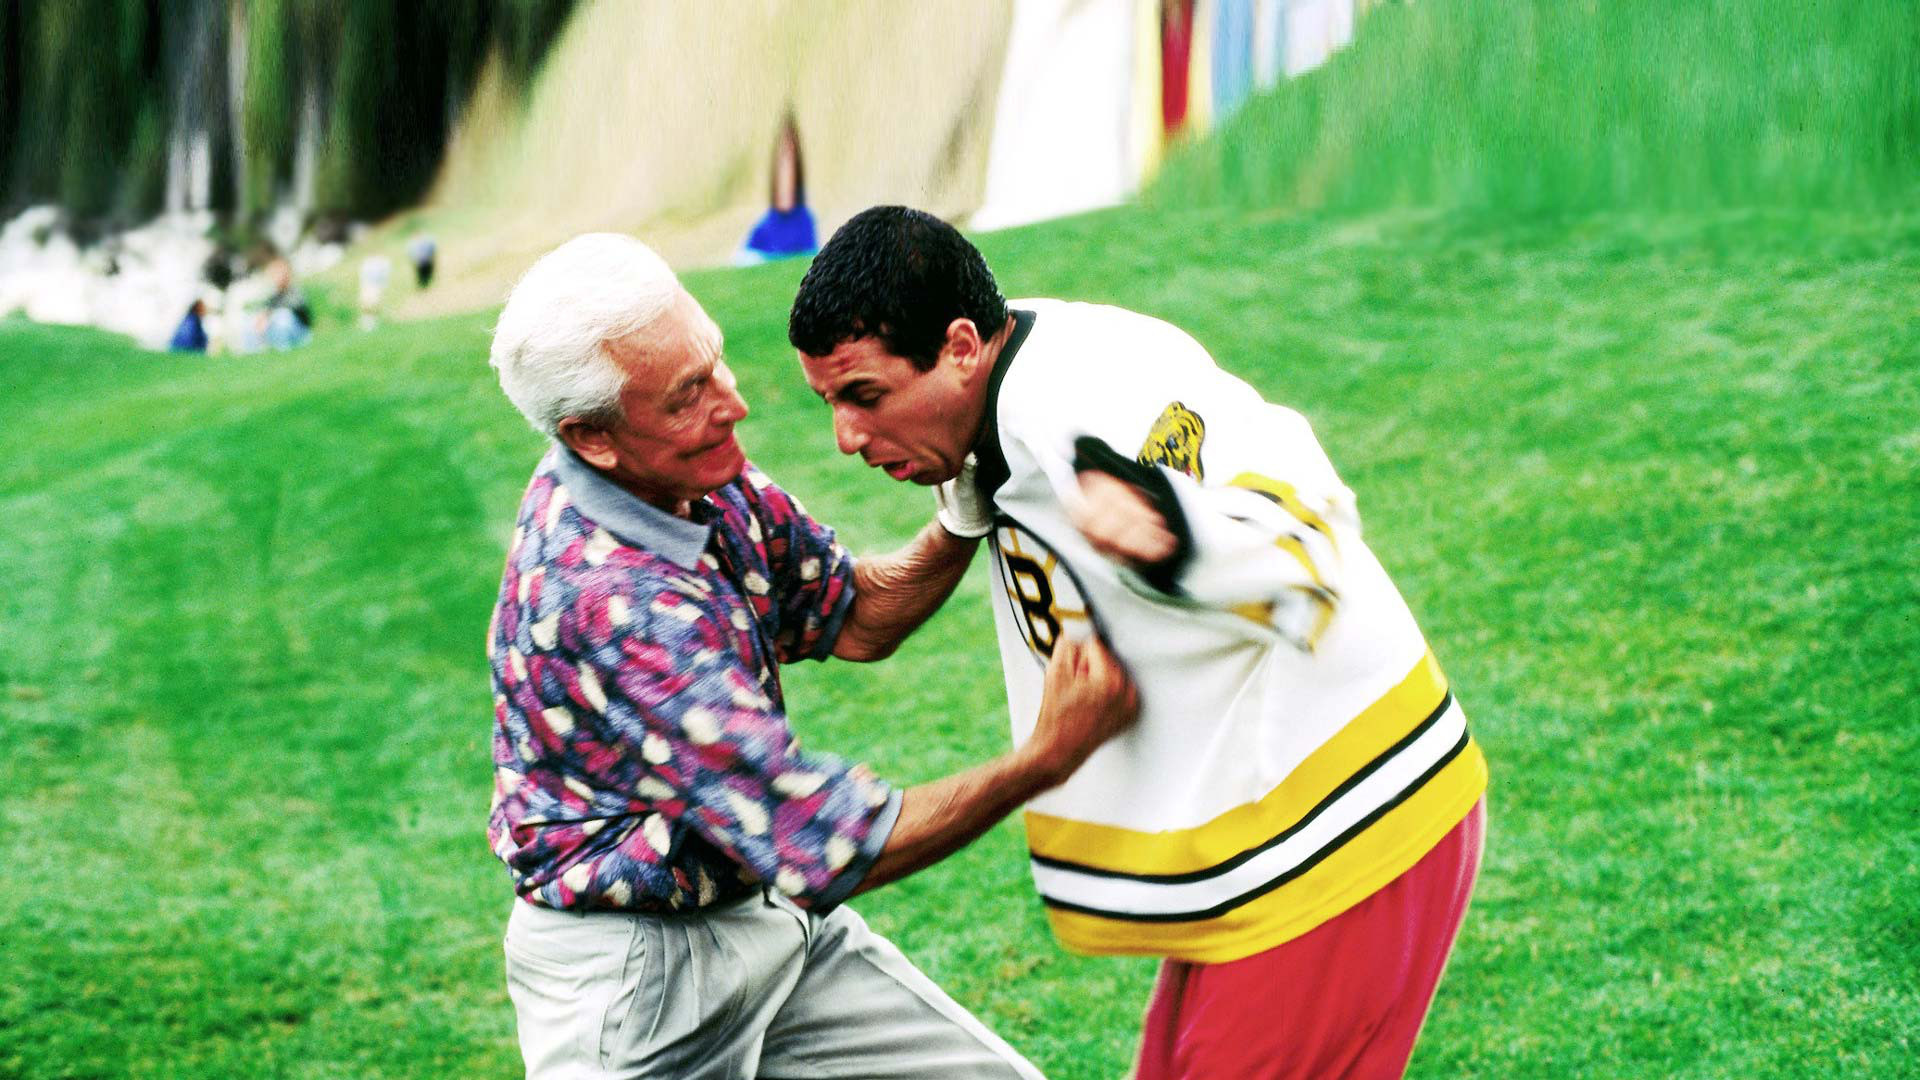 Happy Gilmore was a commercial success, earning $ million on a $12 million budget. This film was the first of multiple collaborations between Sandler and Dugan. The film won an MTV Movie Award for